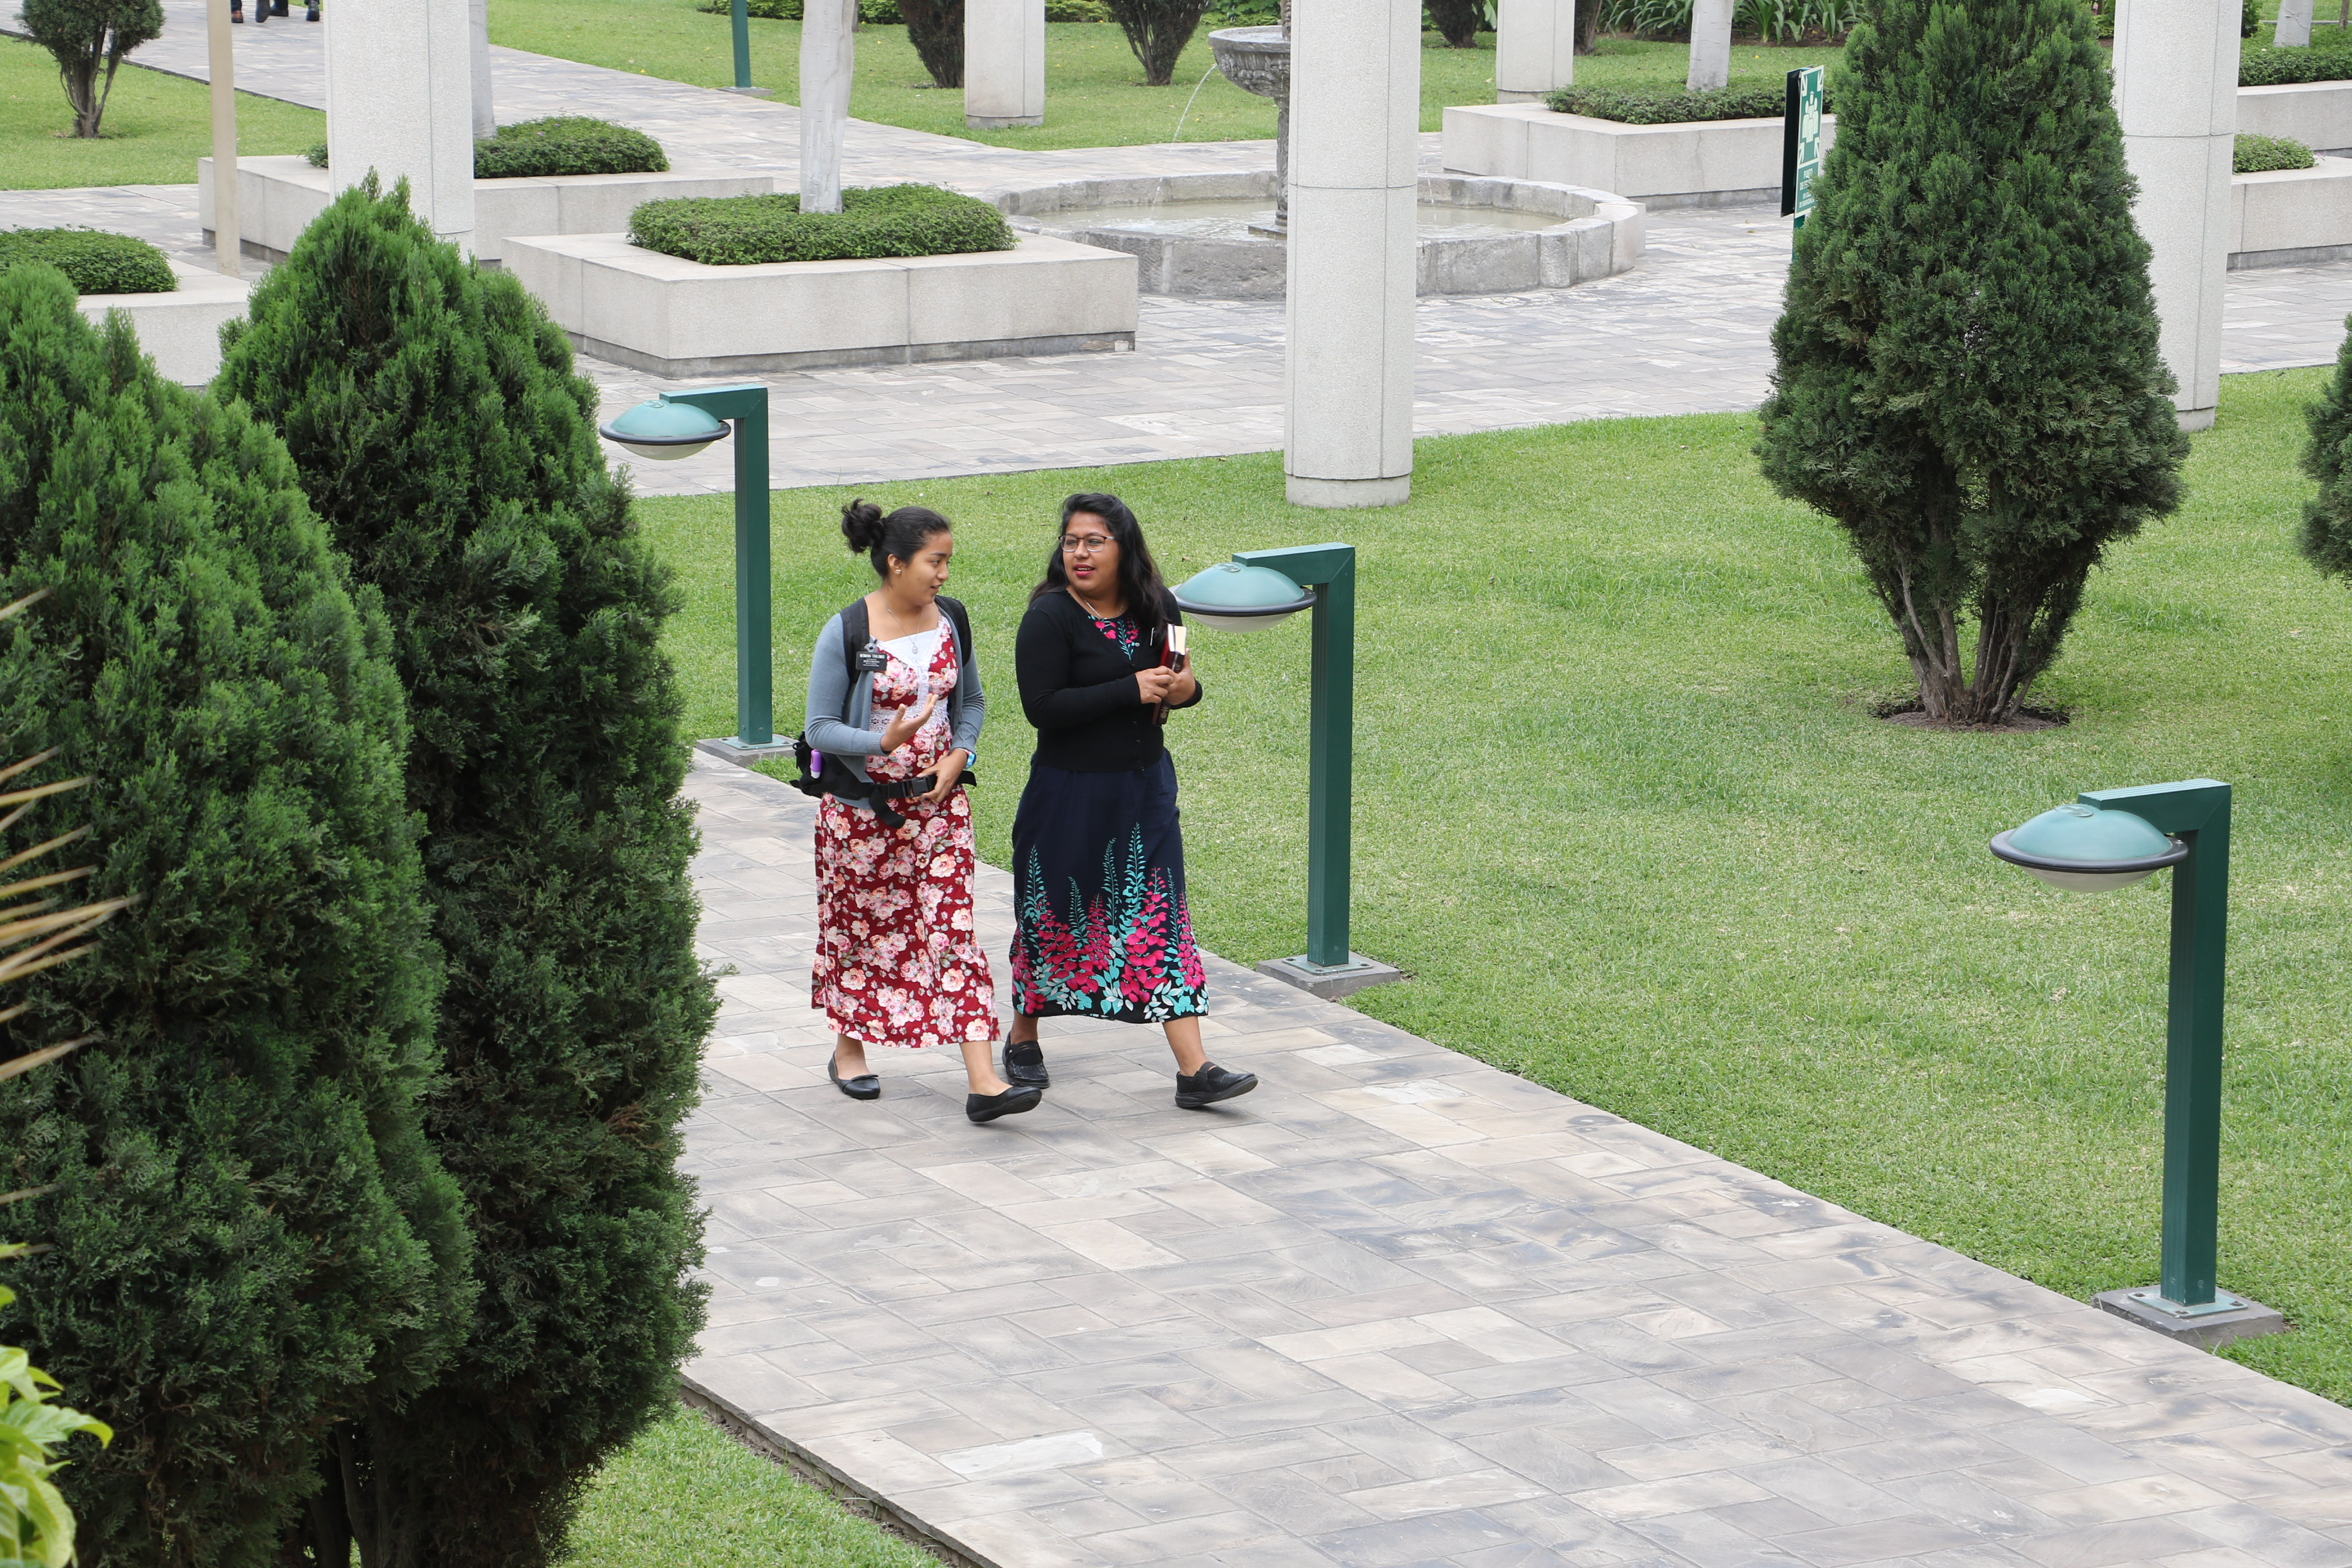 Missionaries walk across the grounds of Peru Missionary Training Center on Oct. 19, 2018. The Church of Jesus Christ of Latter-day Saints has announced the creation of four new missions and the dissolving of 12 existing missions. With these changes, announced on Jan. 2 and beginning July 1, there will be 399 missions worldwide.